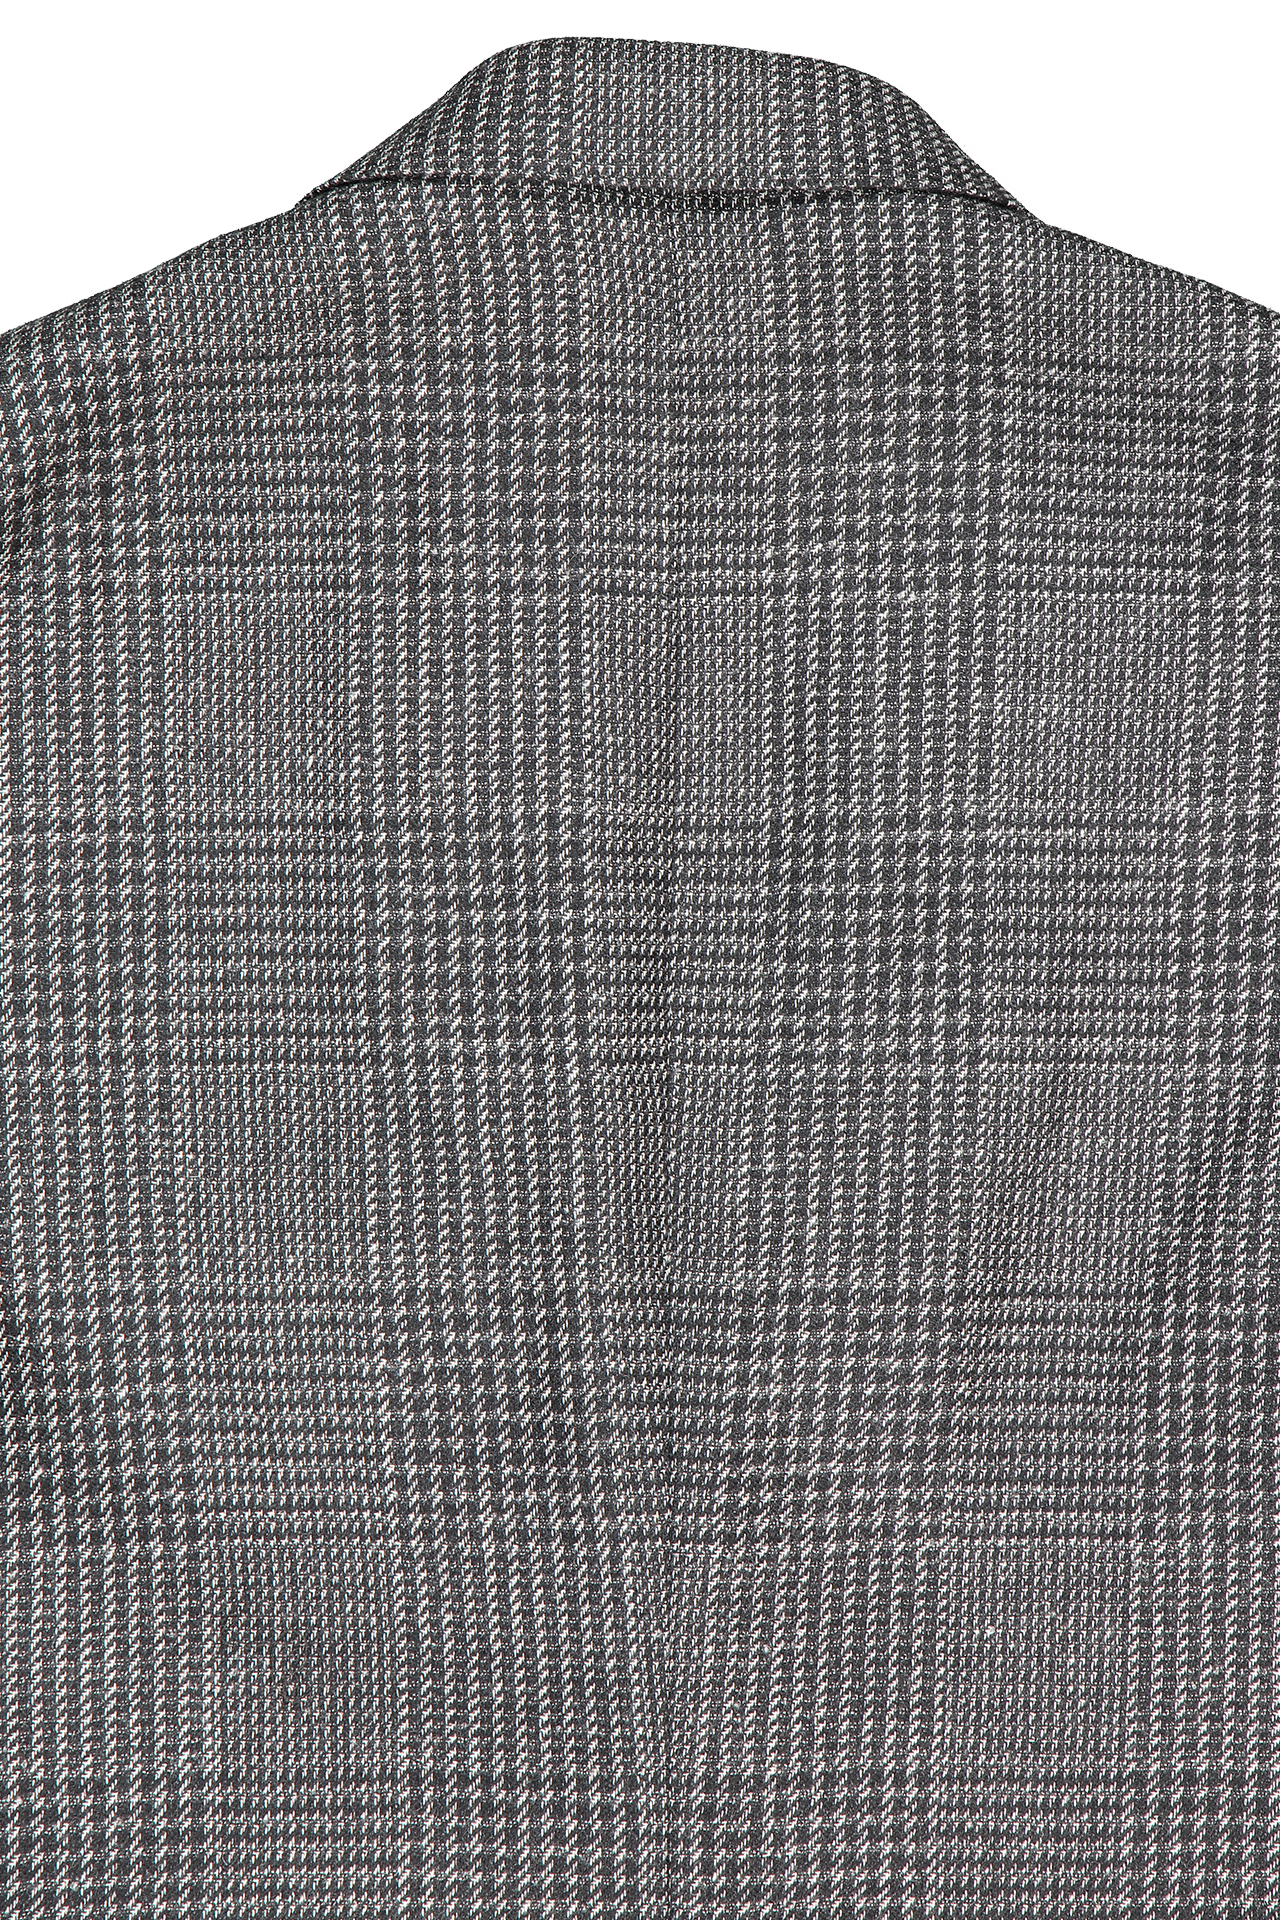 Back collar detail image of Ermenegildo Zegna Grey Plaid Sport Coat